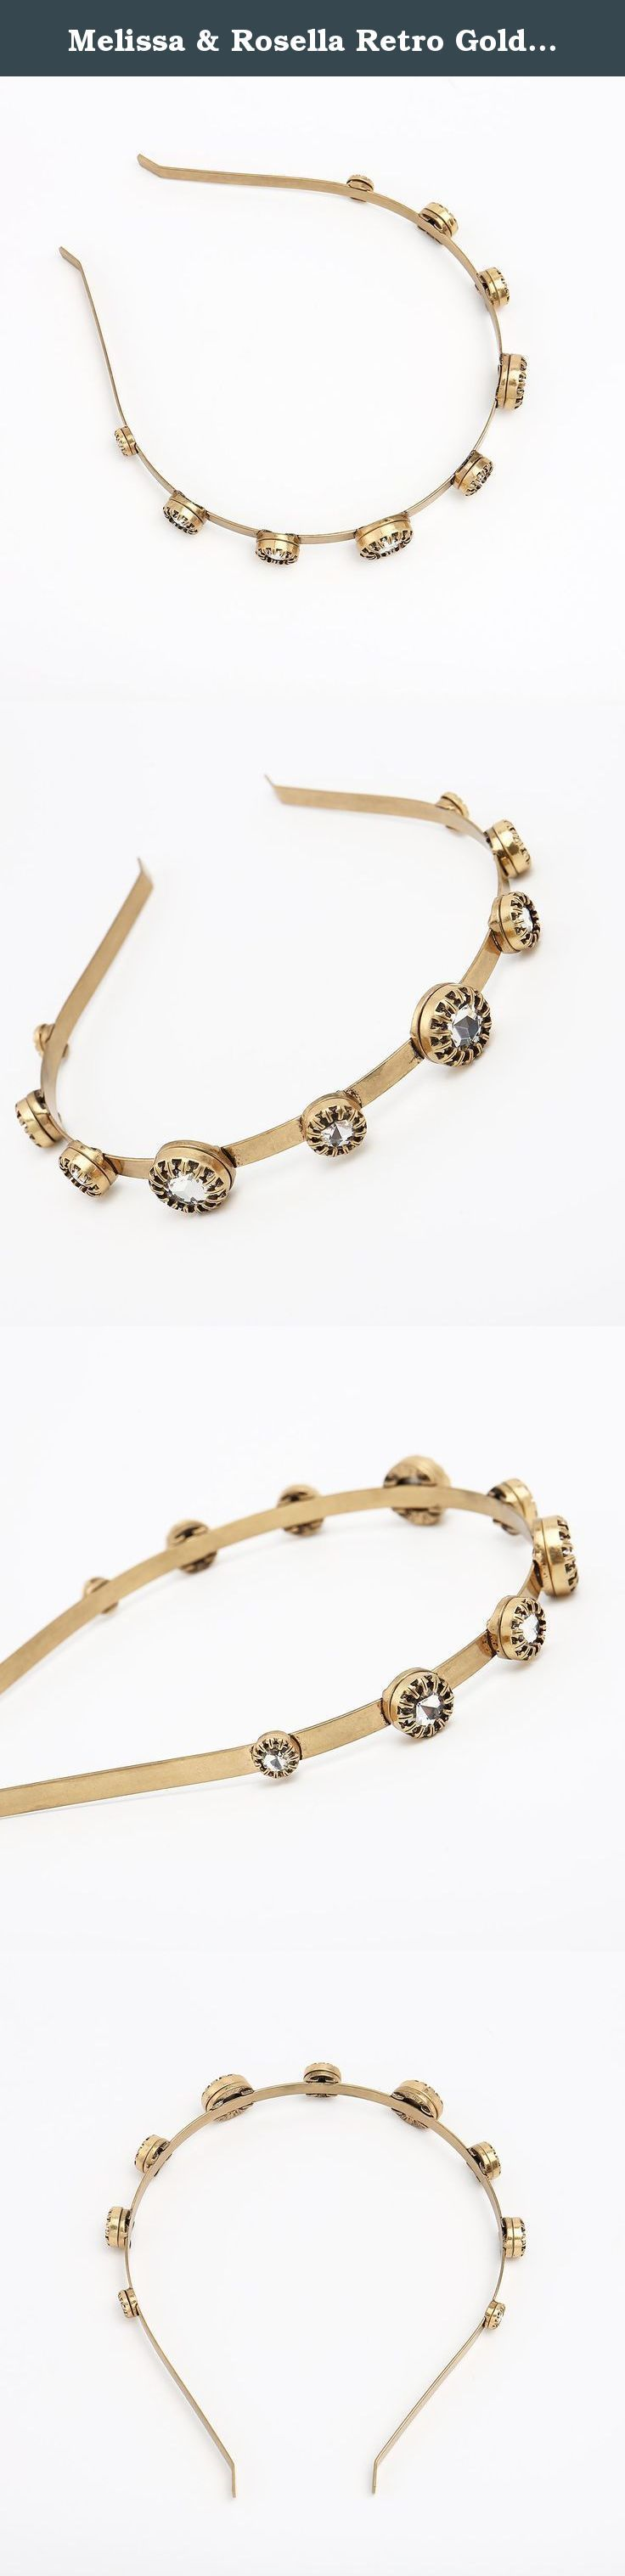 Melissa & Rosella Retro Golden Headband Rhinestone Inlay Hair Band. Description Brand Name: Melissa & Rosella Model No.: QT0150F-284 Material: Alloy Gilded Size: The maximum diameter of the artificial gemstone is about 16cm Weight: 44g Note: 1. Due to manual measurement,please allow 1-2cm difference. 2. Picture shown, which mainly lies in different light effect and computer monitor. .